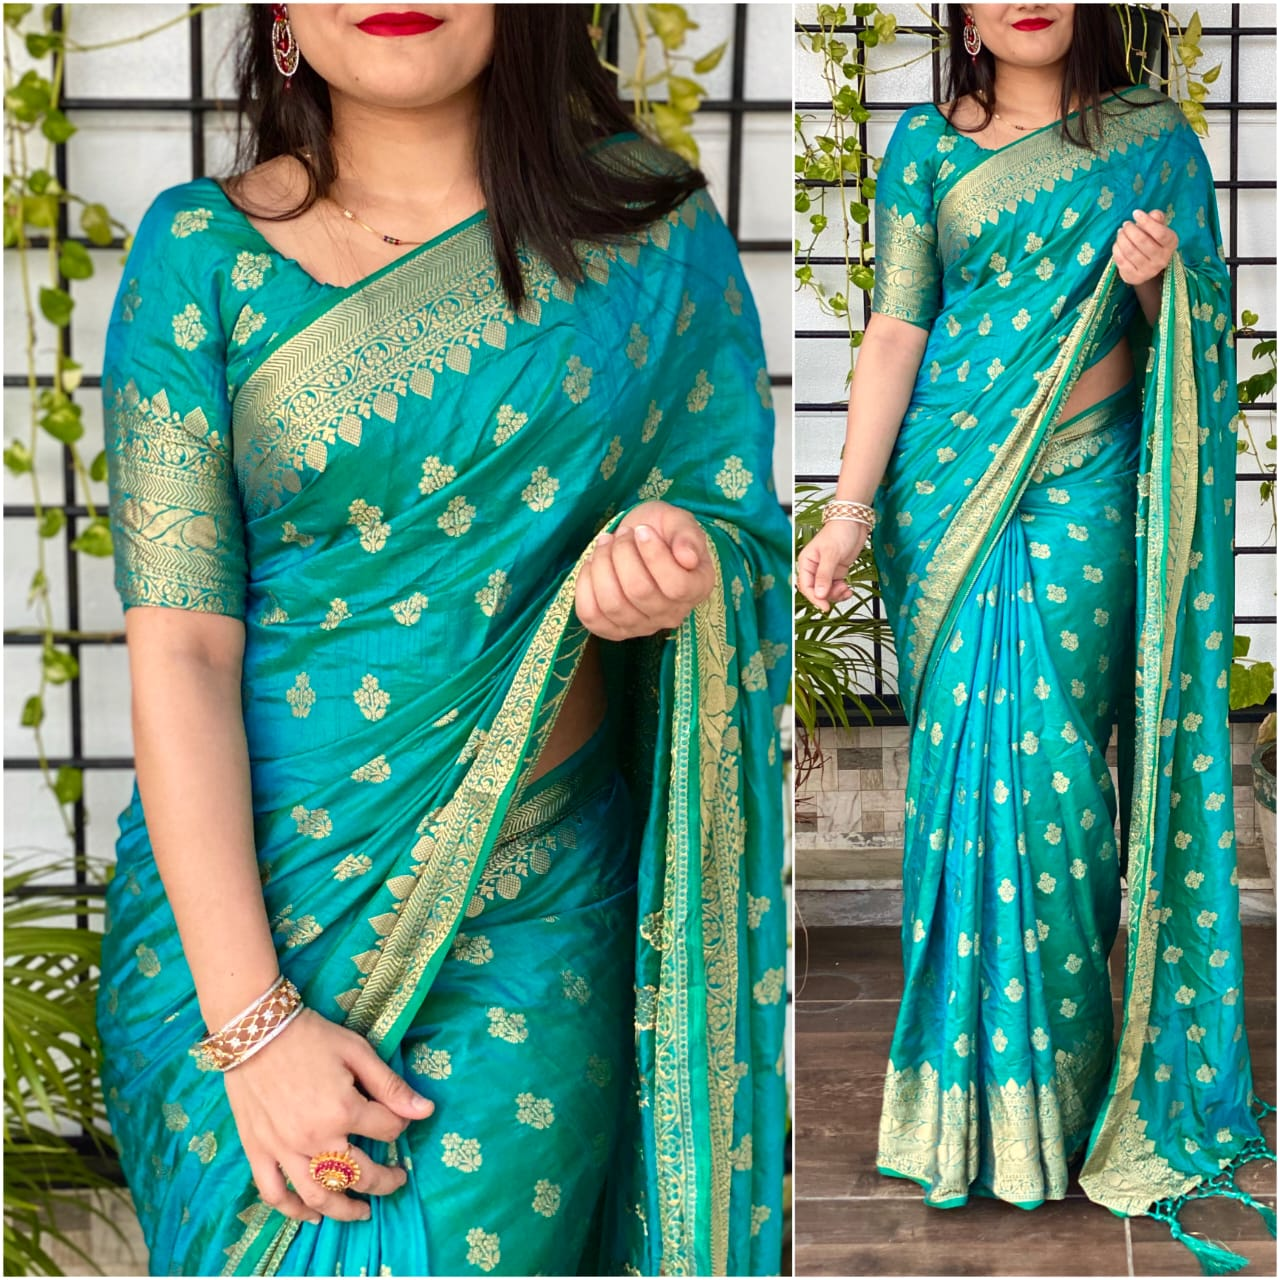 Knockout Rama Color Designer Jacquard Work Sana Silk Saree Blouse for Women